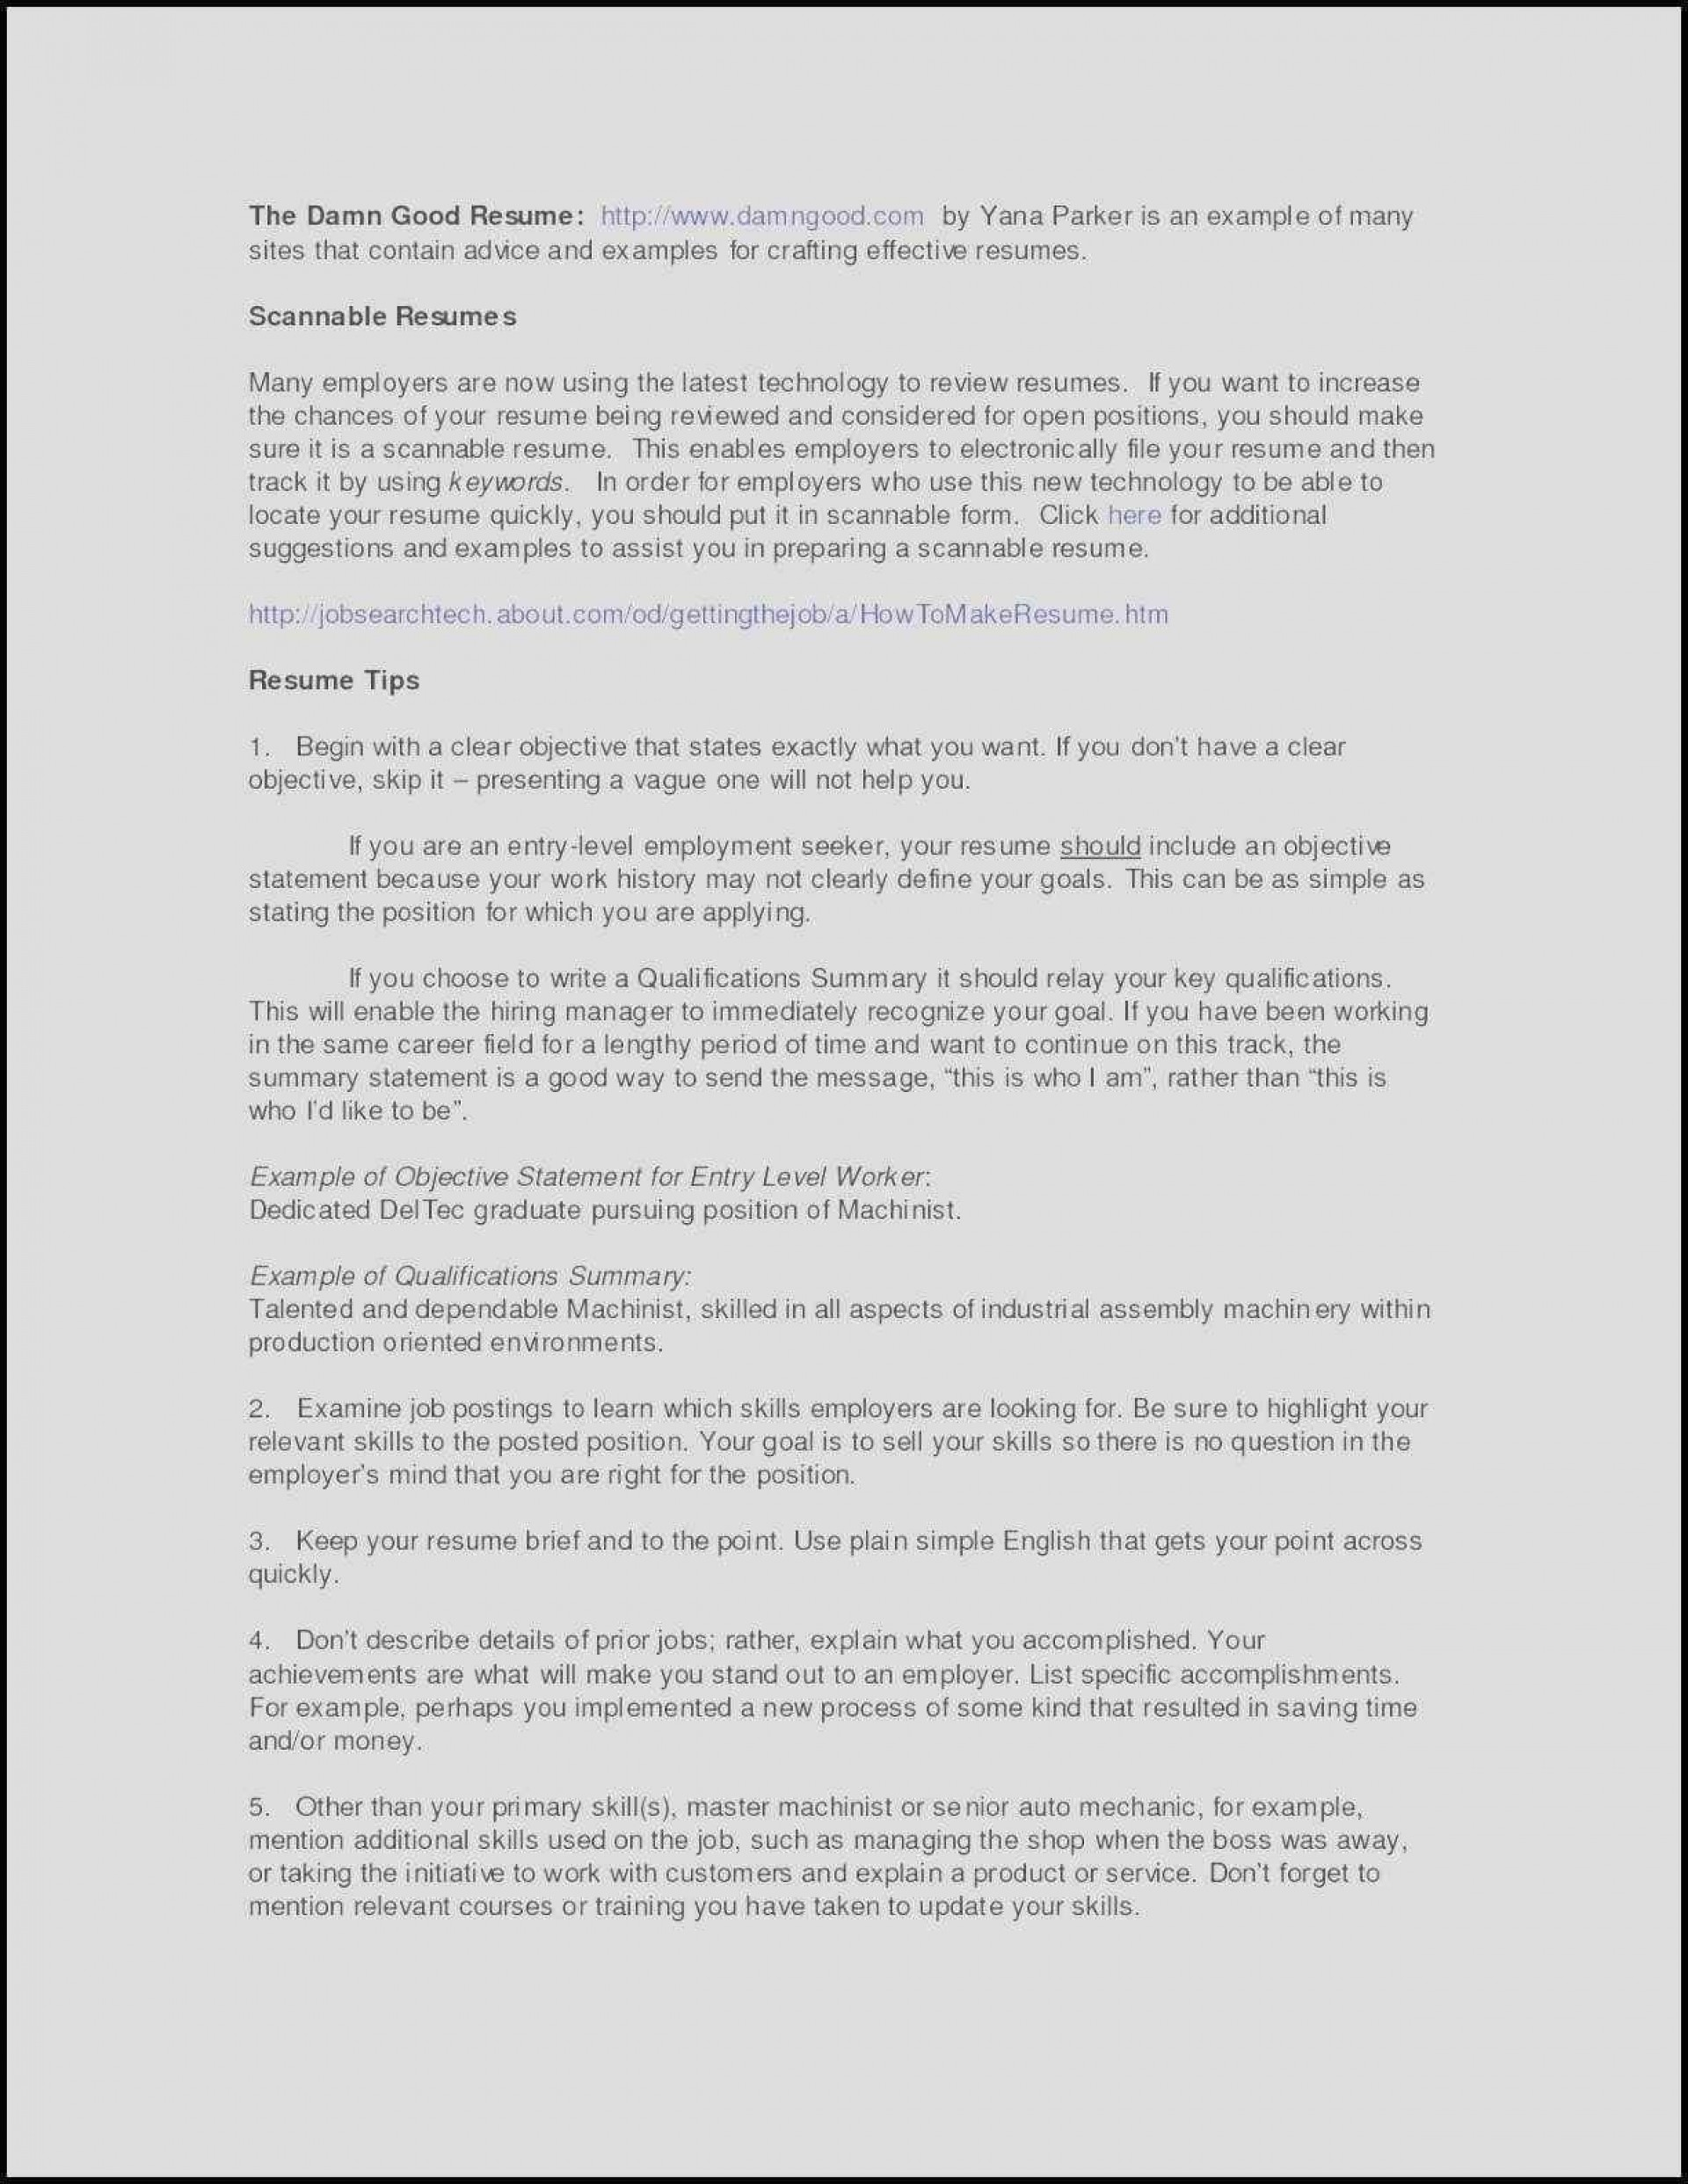 008 Resume Sample Qualification Summary Valid Ideas Great Of Research Paper Amazing Executive Apa Format 1920